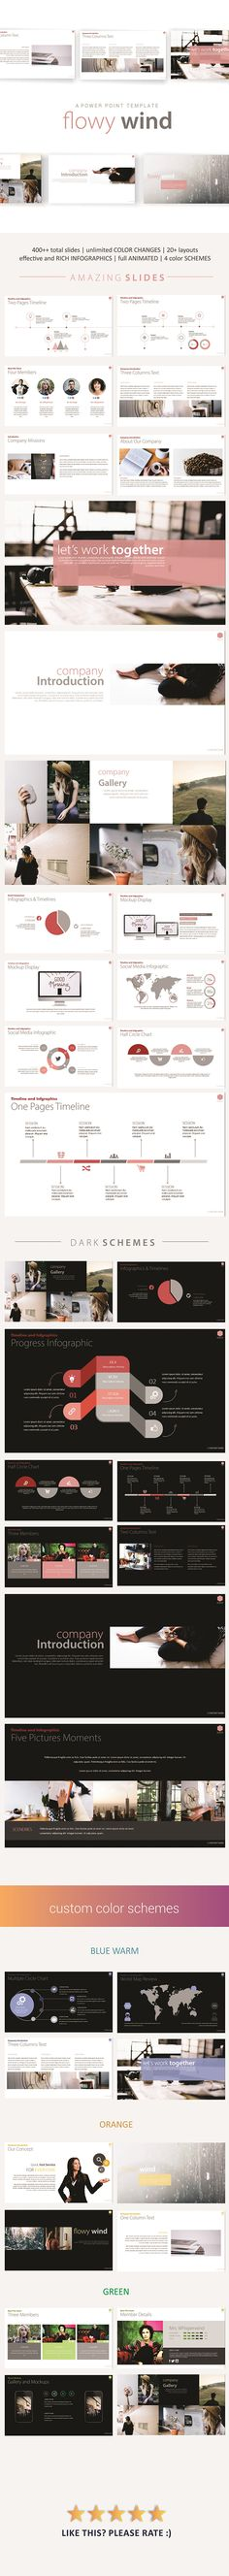 Flowy Wind PowerPoint Template. Download here: http://graphicriver.net/item/flowy-wind-powerpoint-template/16108017?ref=ksioks